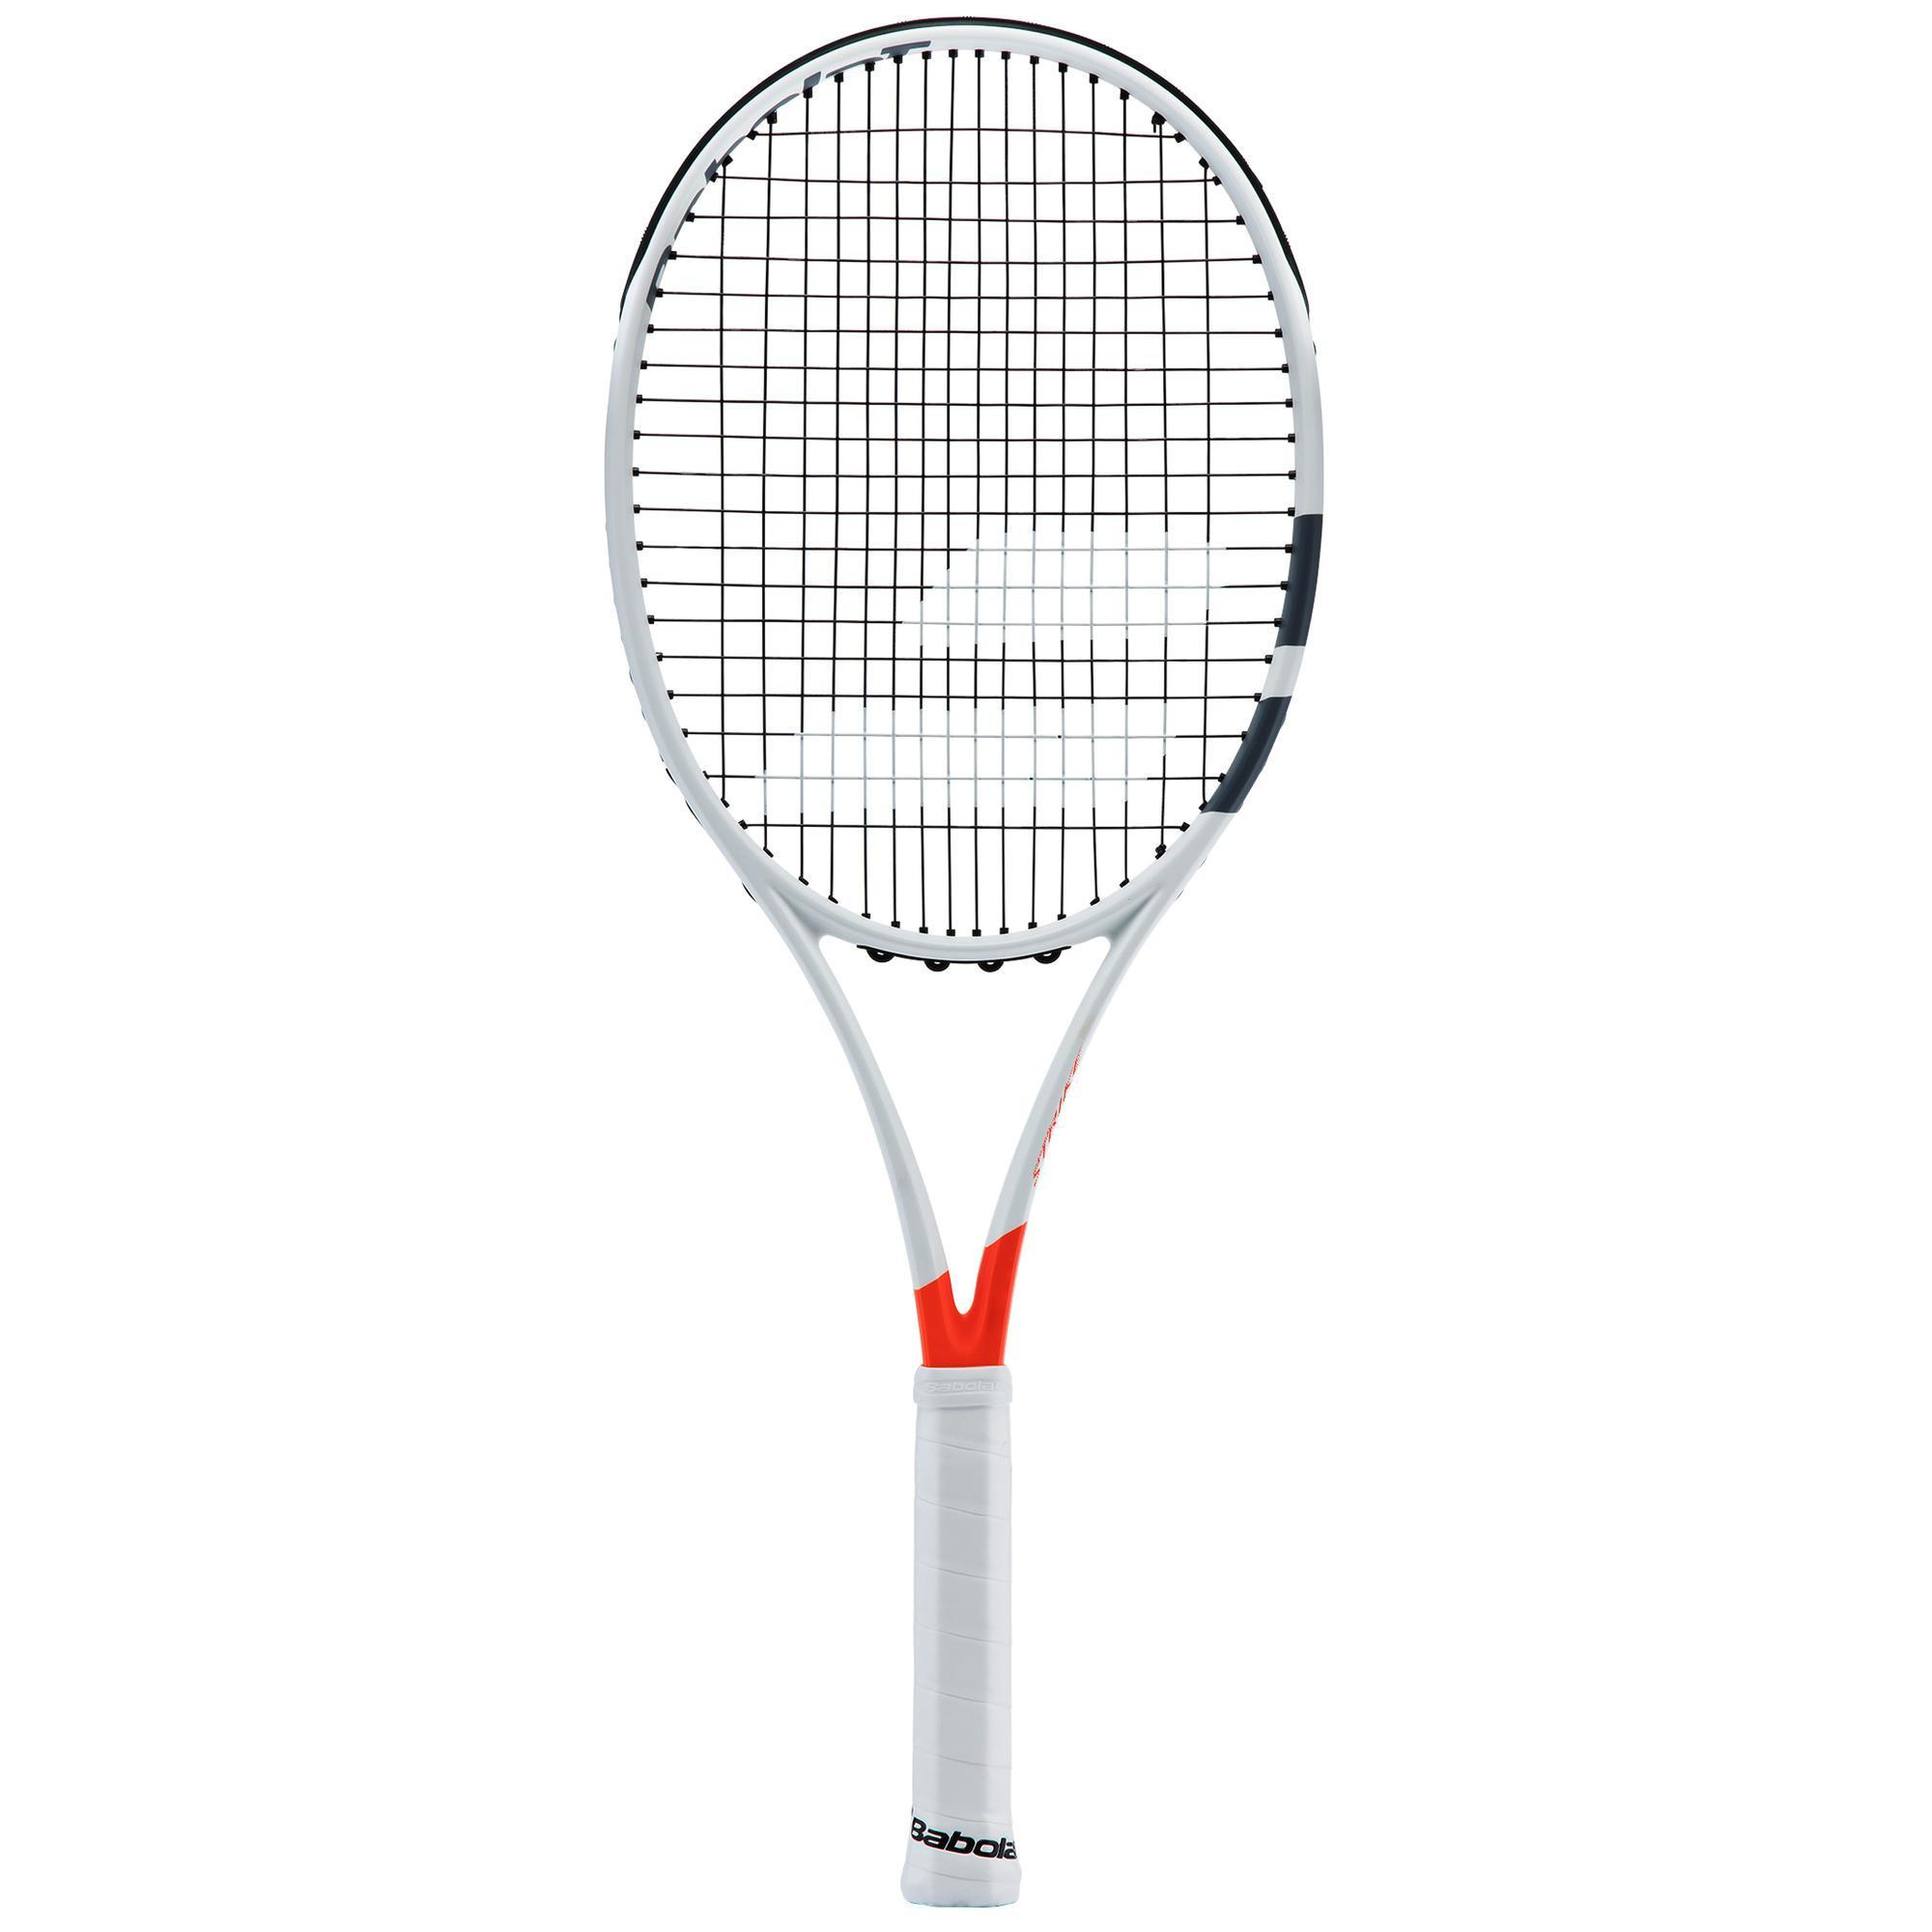 Babolat Tennisracket VW Pure Strike 100 kopen